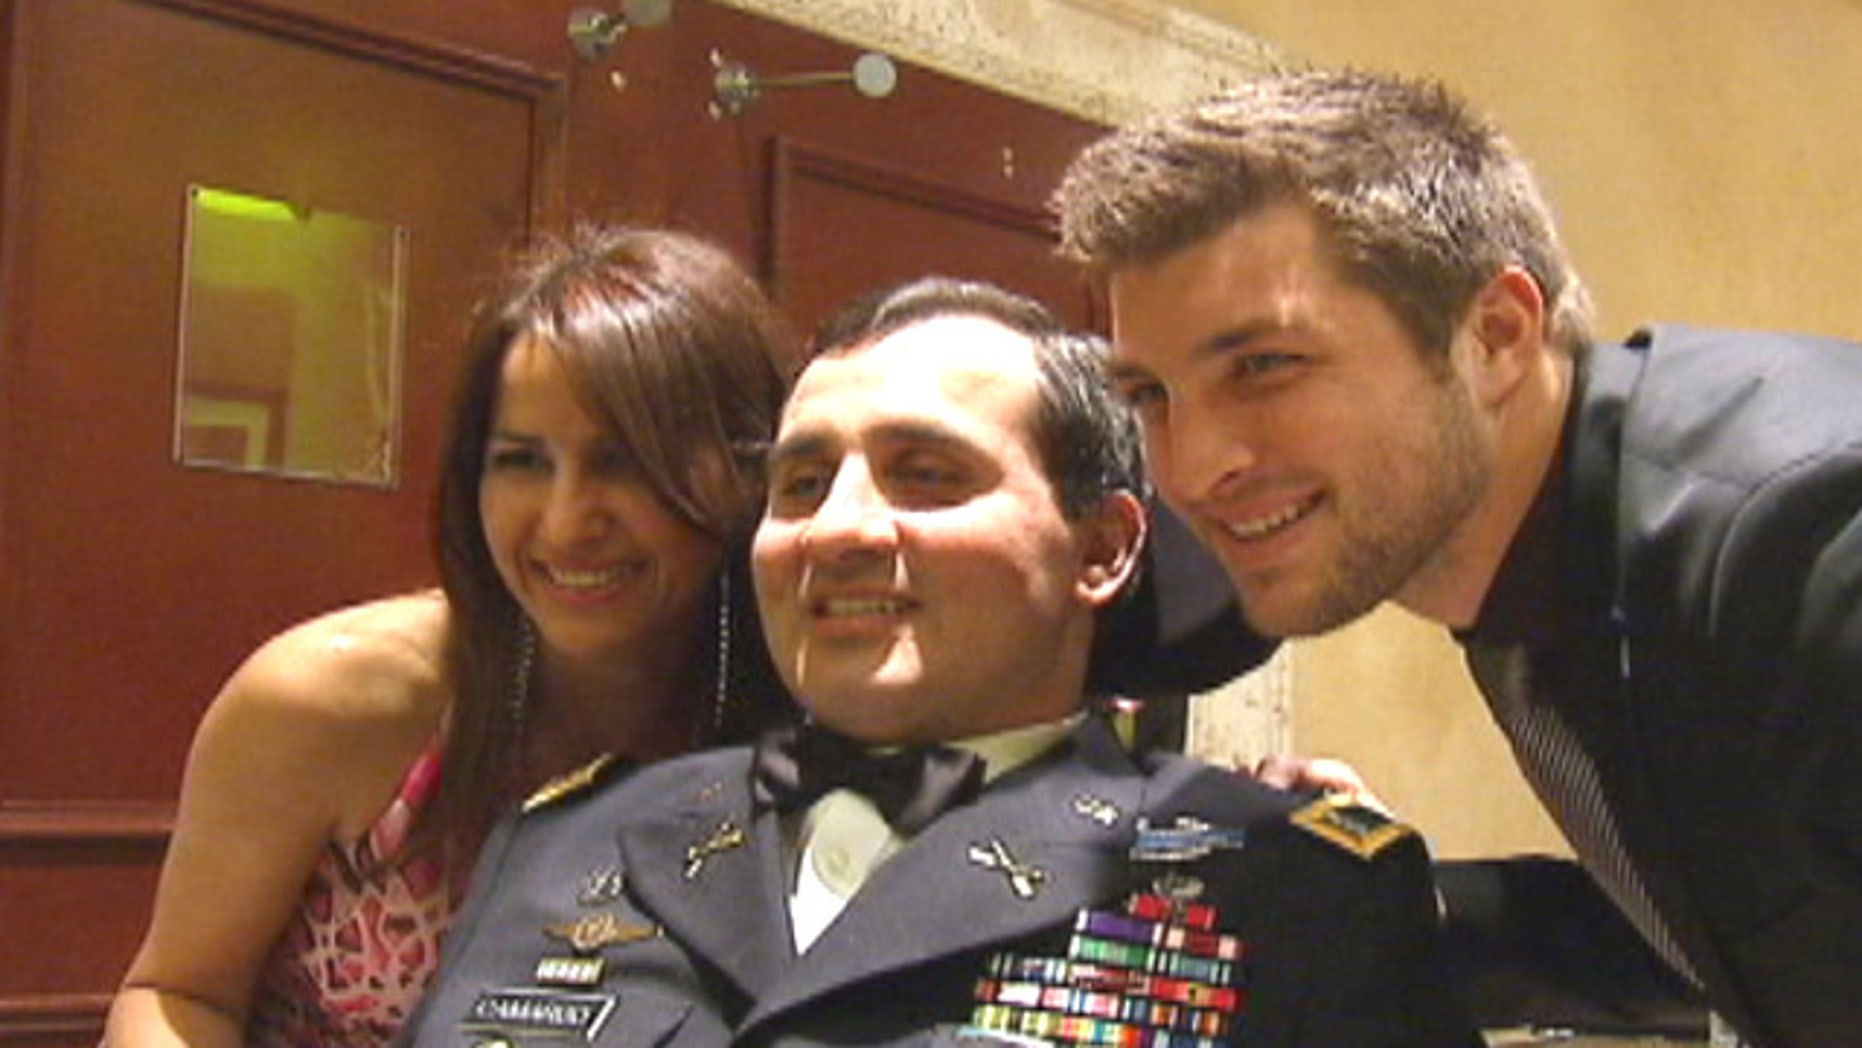 Mar. 9, 2012: U.S. Army Ranger Romy Camargo got a surprise visit from Tim Tebow in Florida.